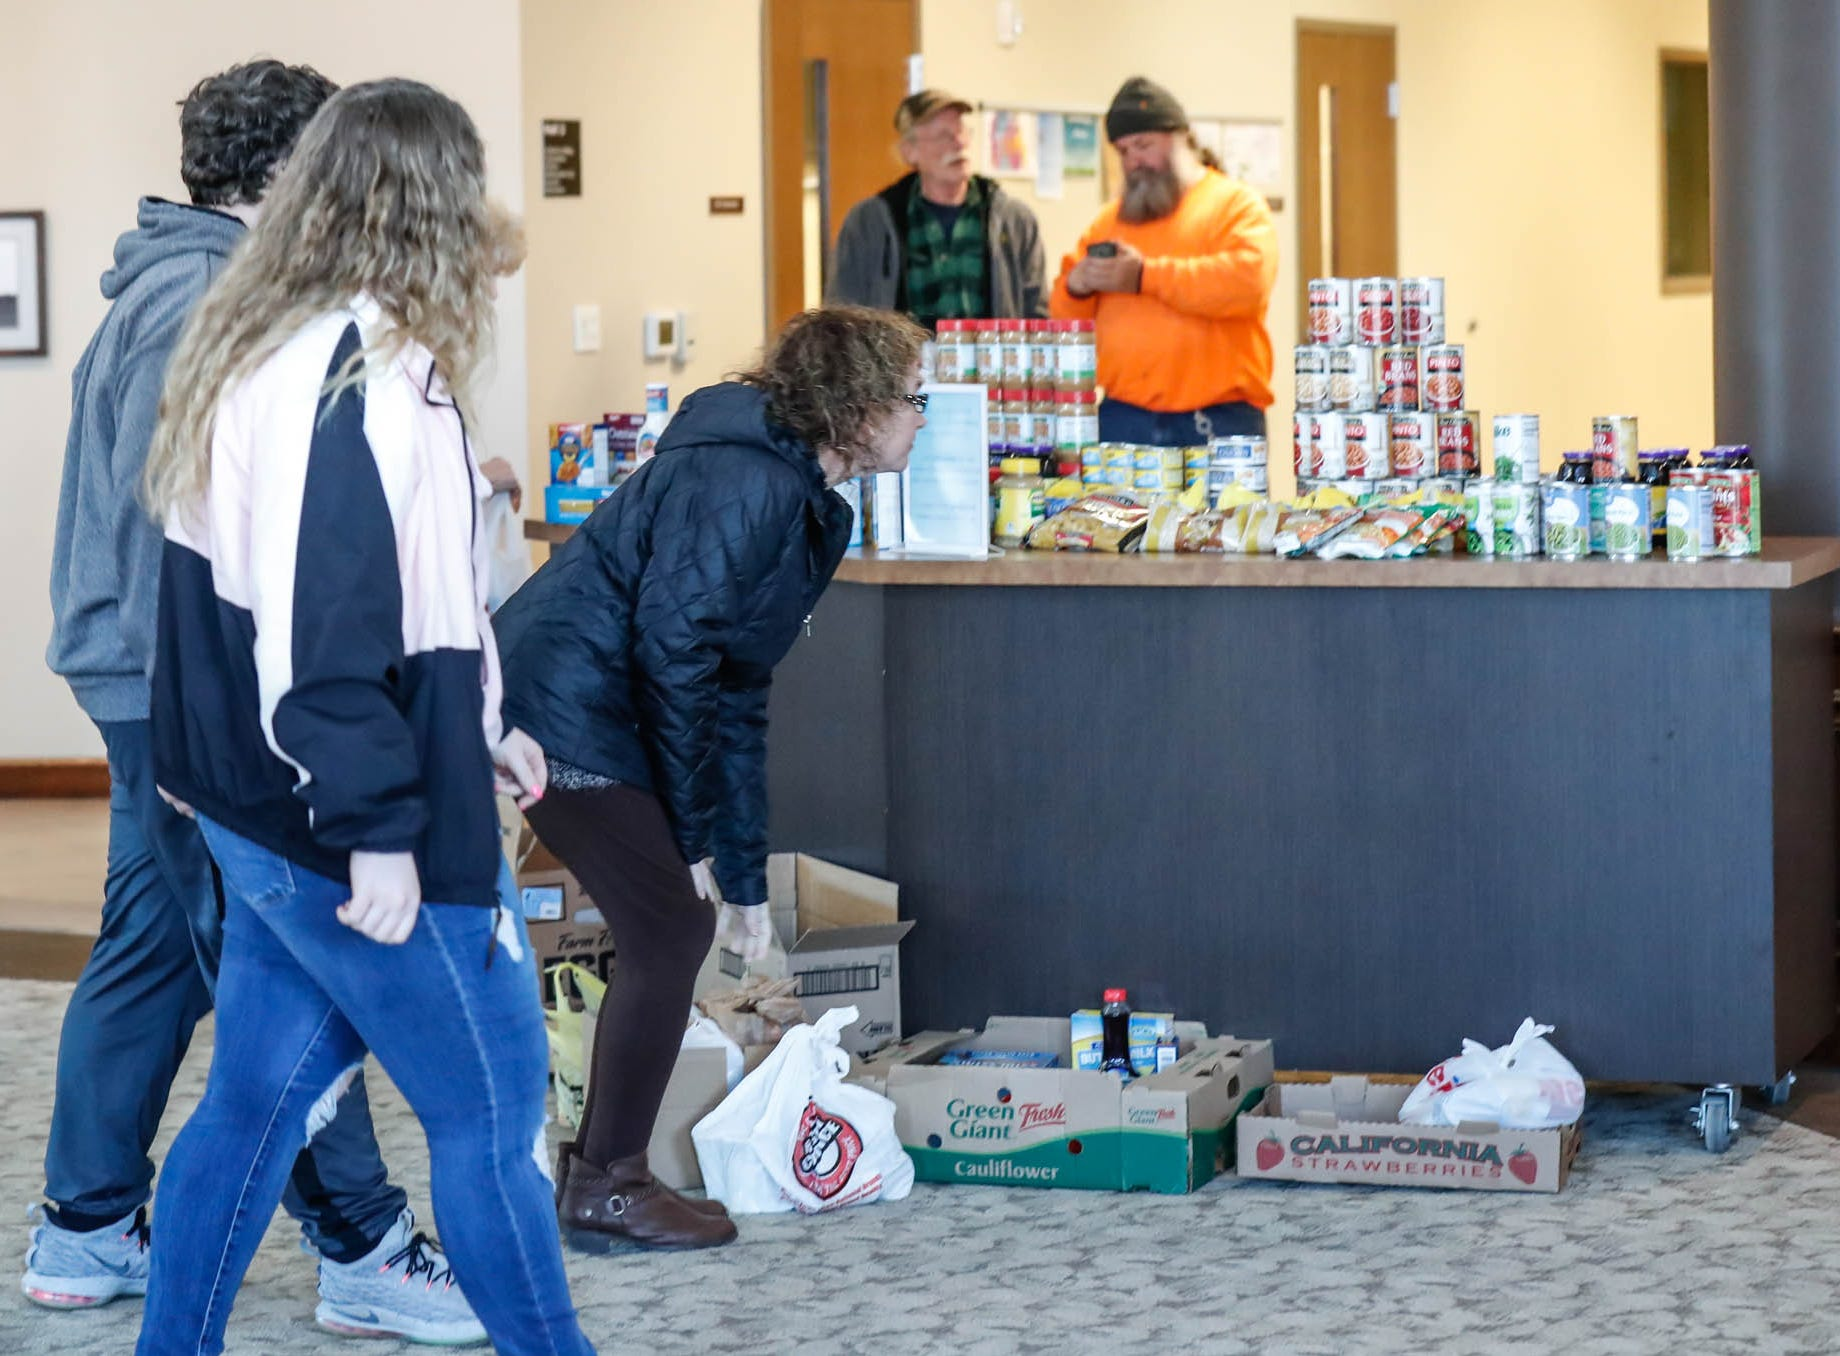 Two years after Delphi's Abby Williams and Libby German were murdered, their families hold a community prayer remembrance with canned food drive at Delphi United Methodist Church 1796 US-421, on Wednesday, Feb. 13, 2019.